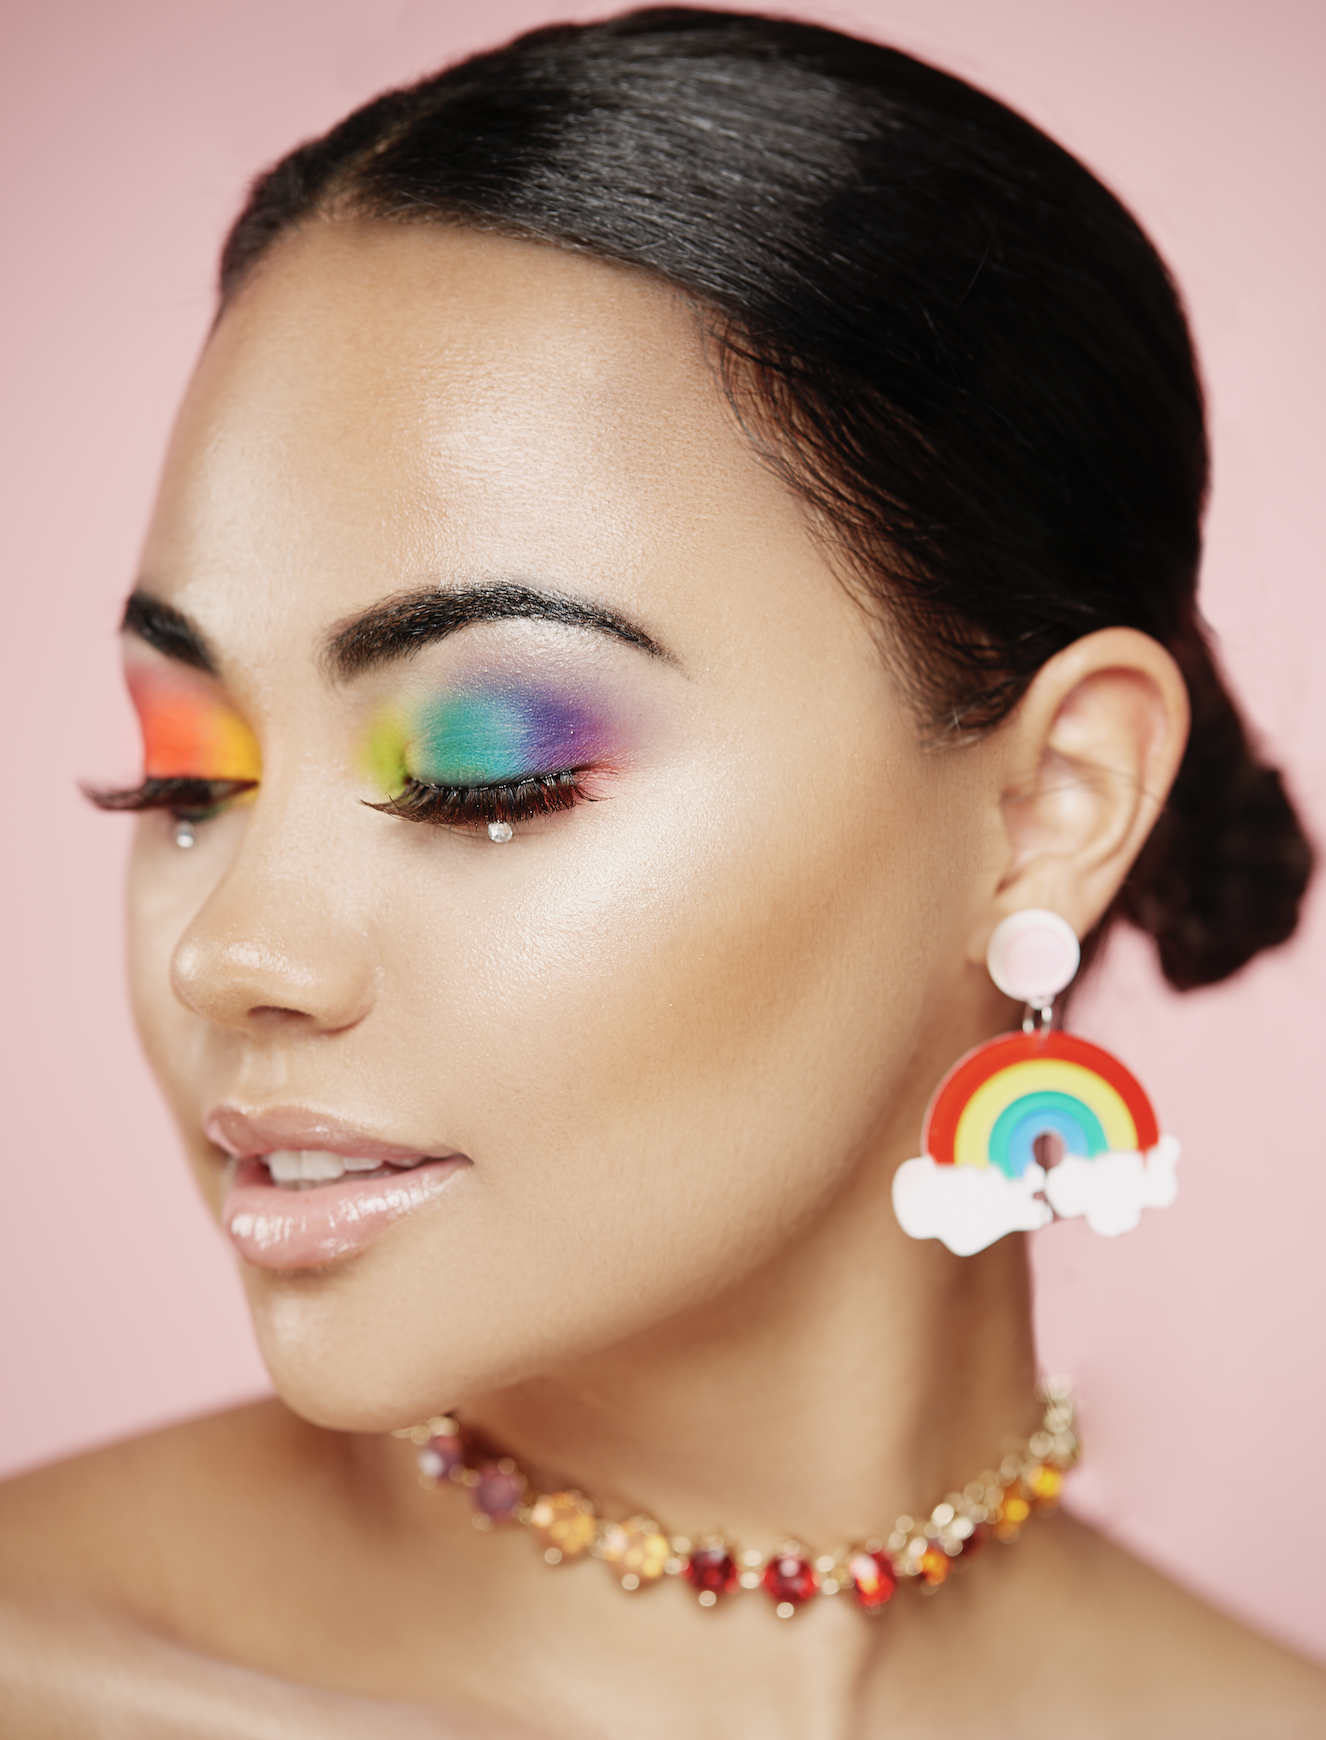 Yass! Finally a #Pride look that you can rock all day, everyday!